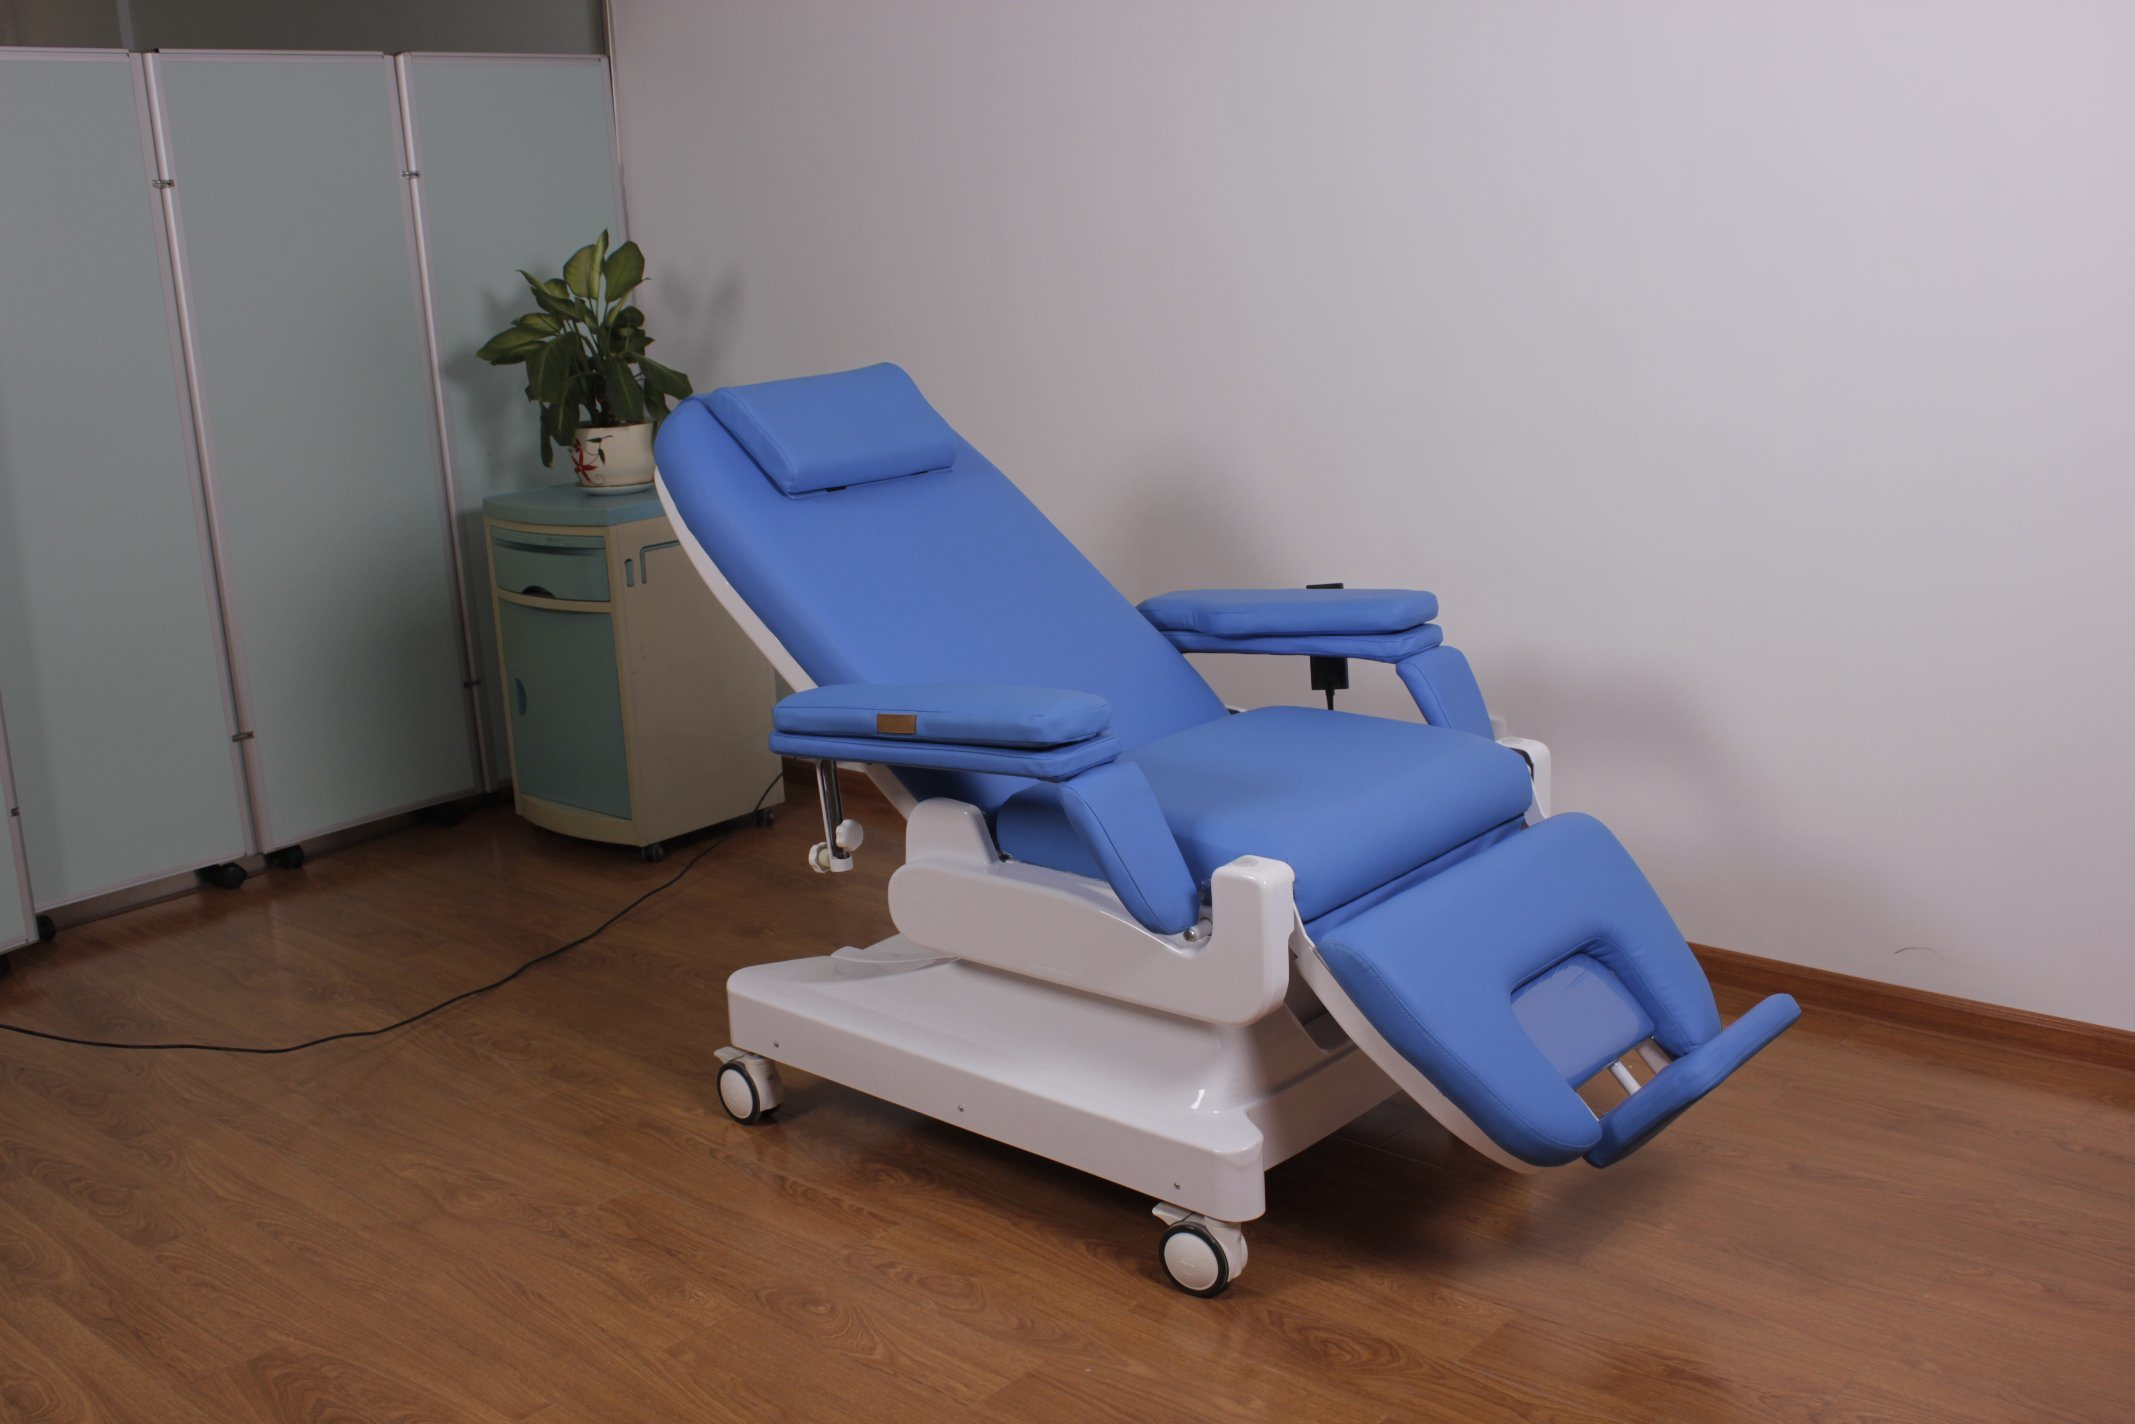 dialysis hospital medical productimage transfusion chair electric patient china vywnekscmrhi for hemodialysis treatment